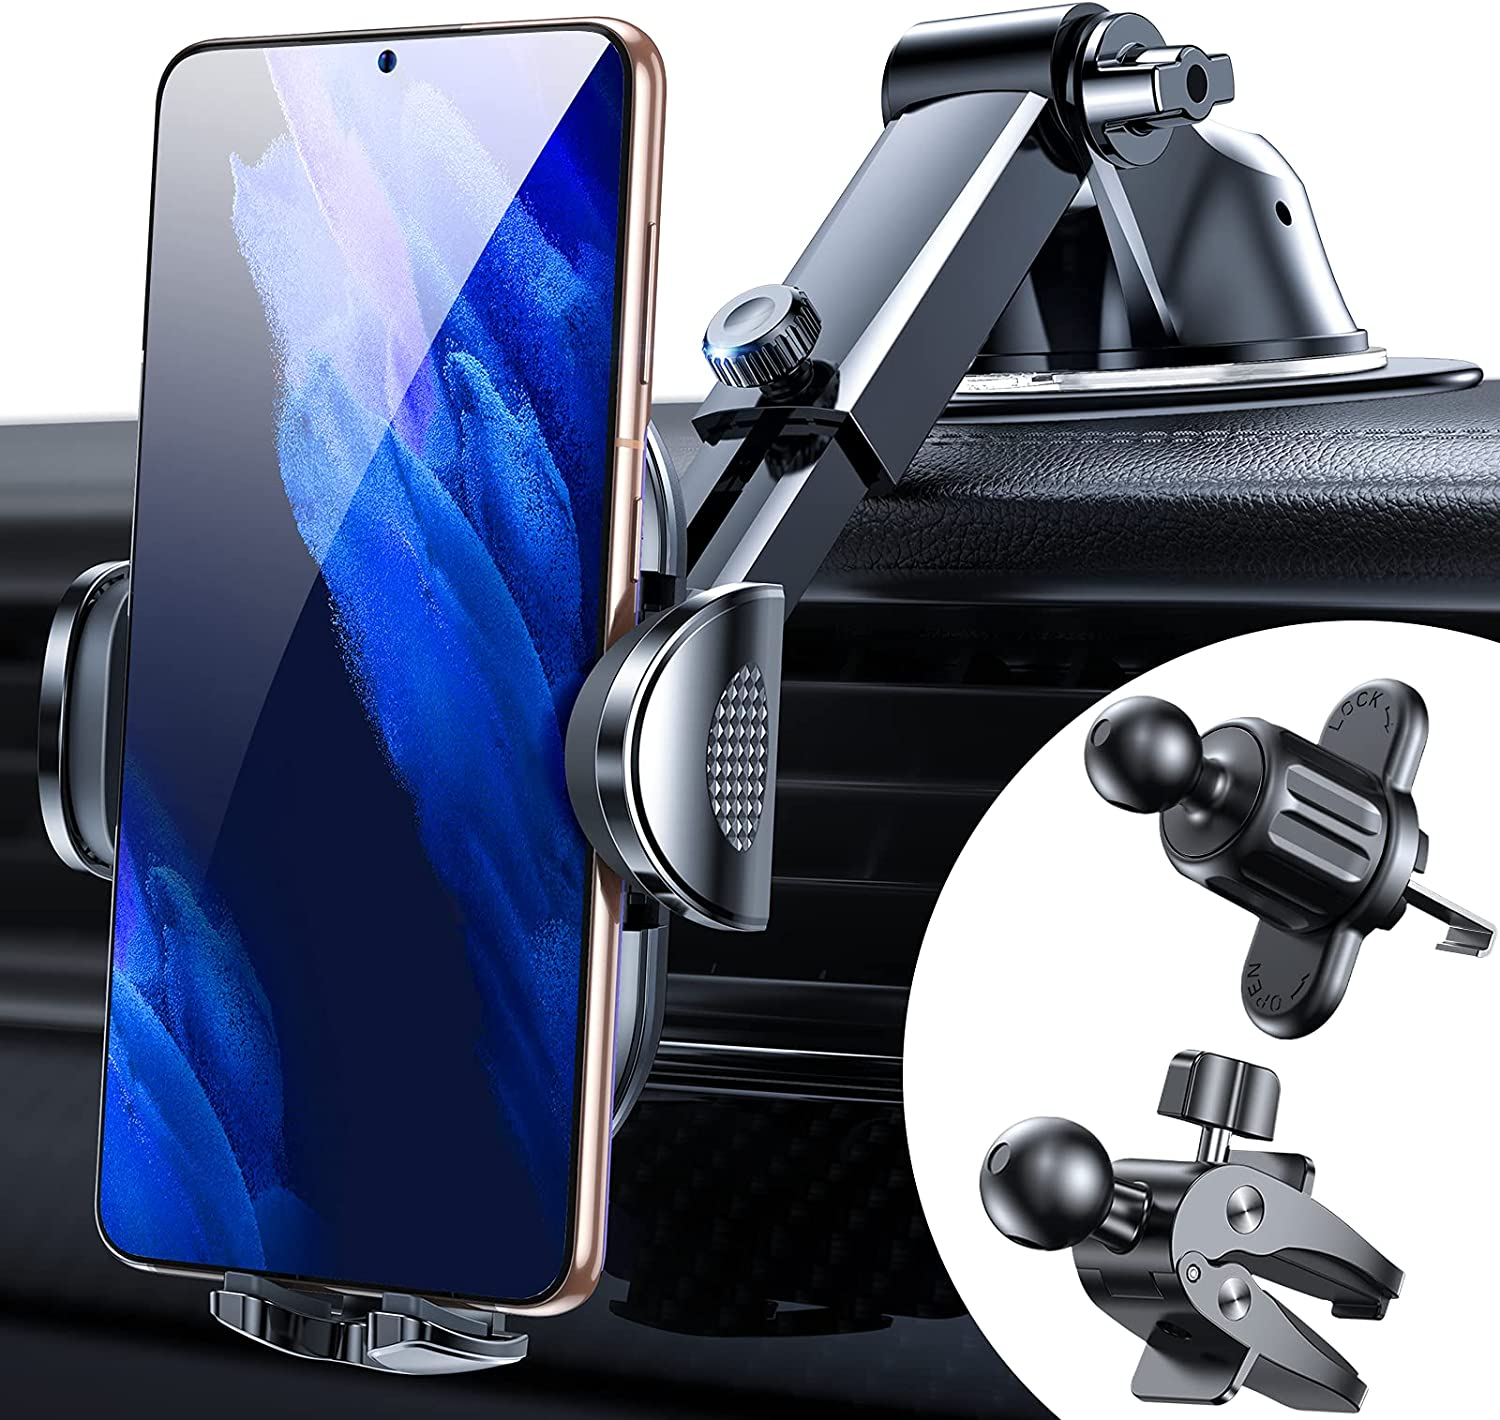 Anwas Car Phone Holder Mount [Ultra Sturdy, Bumpy Roads Friendly], Cell Phone Long Arm Holder for Windshield Dash Air Vent, Universal Mount Compatible with All iPhones Samsungs & Thick Case